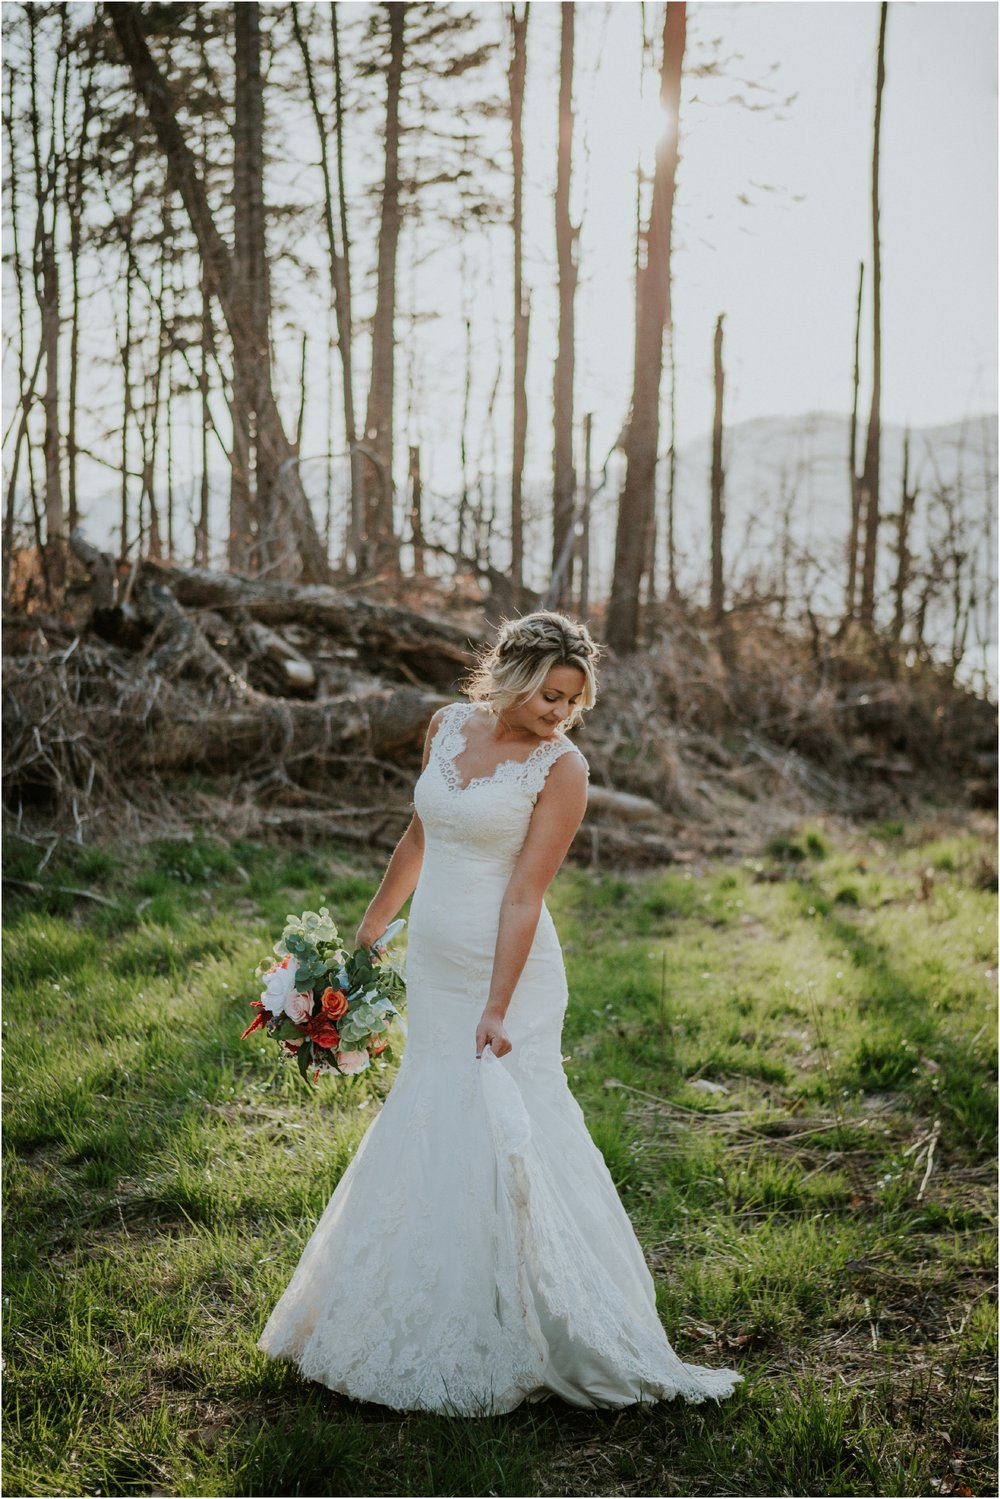 watauga-lake--bohemian-bridal-styled-session-northeast-tennessee-wedding-elopement-photography_0006.jpg